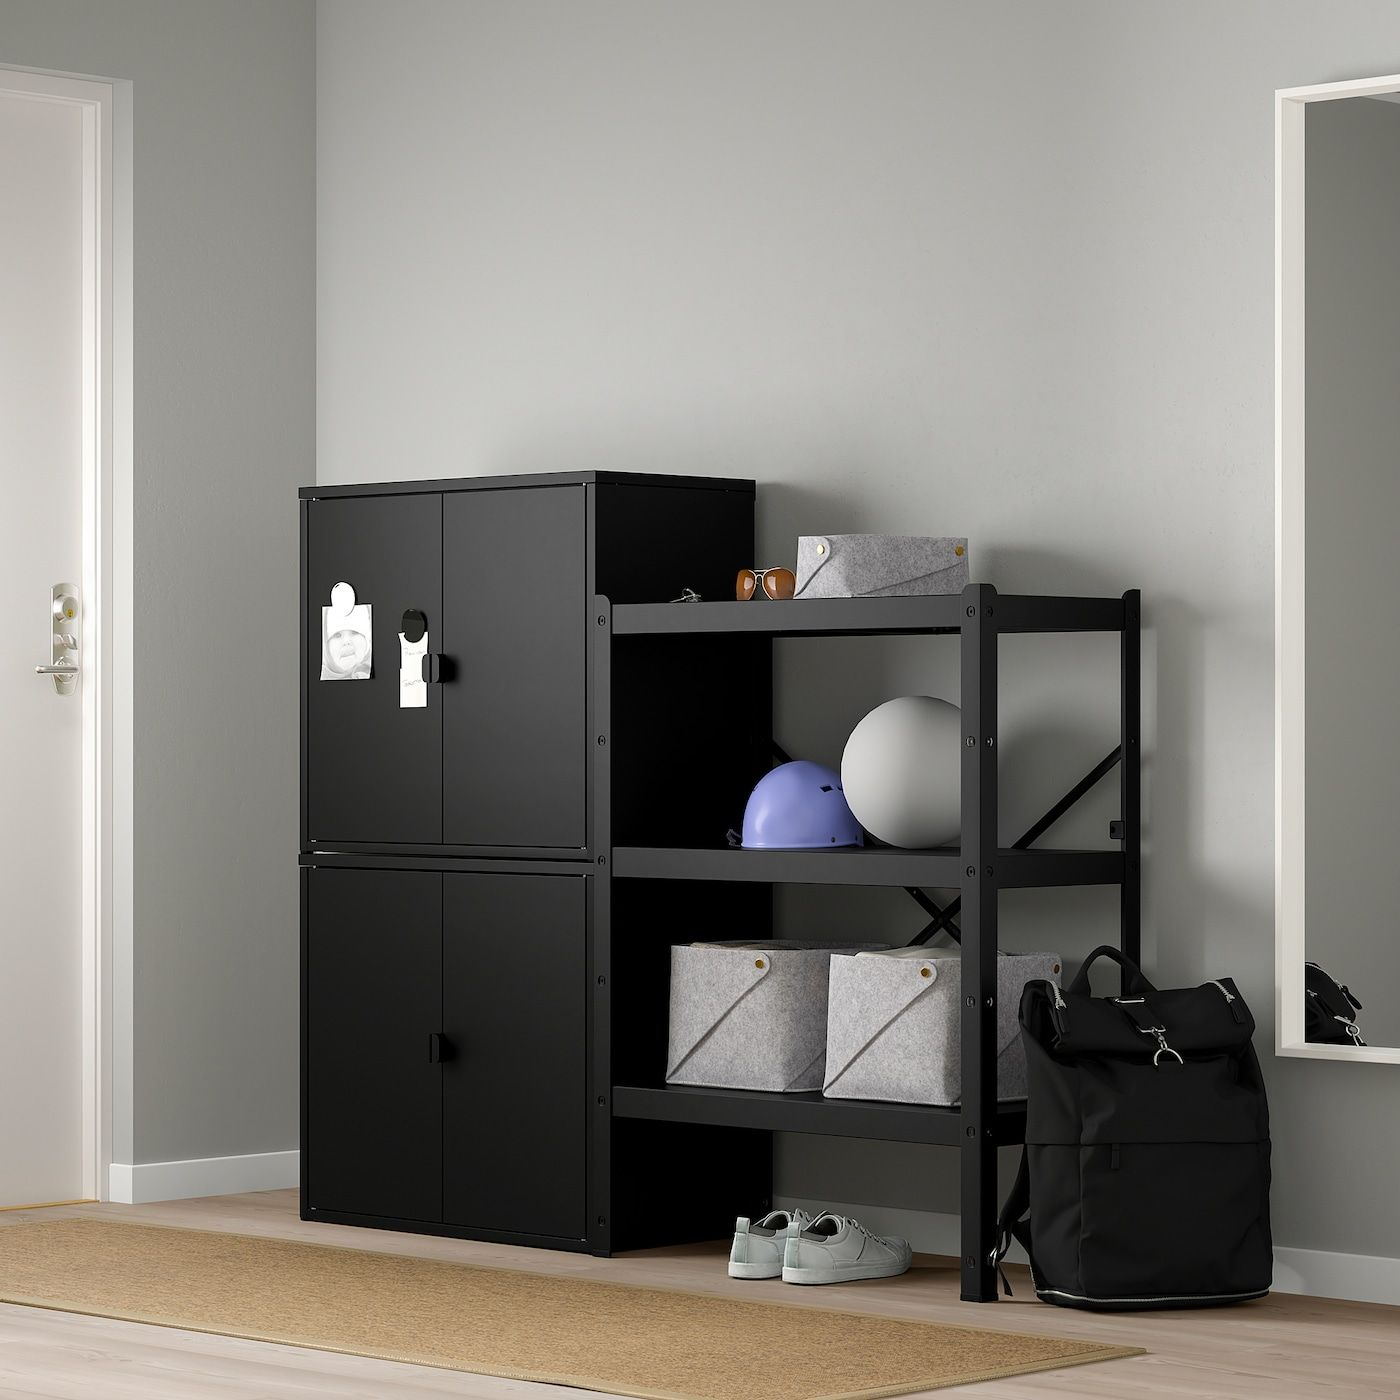 Ikea Bror Shelving Unit With Cabinets In 2020 Ikea Hochbett Mit